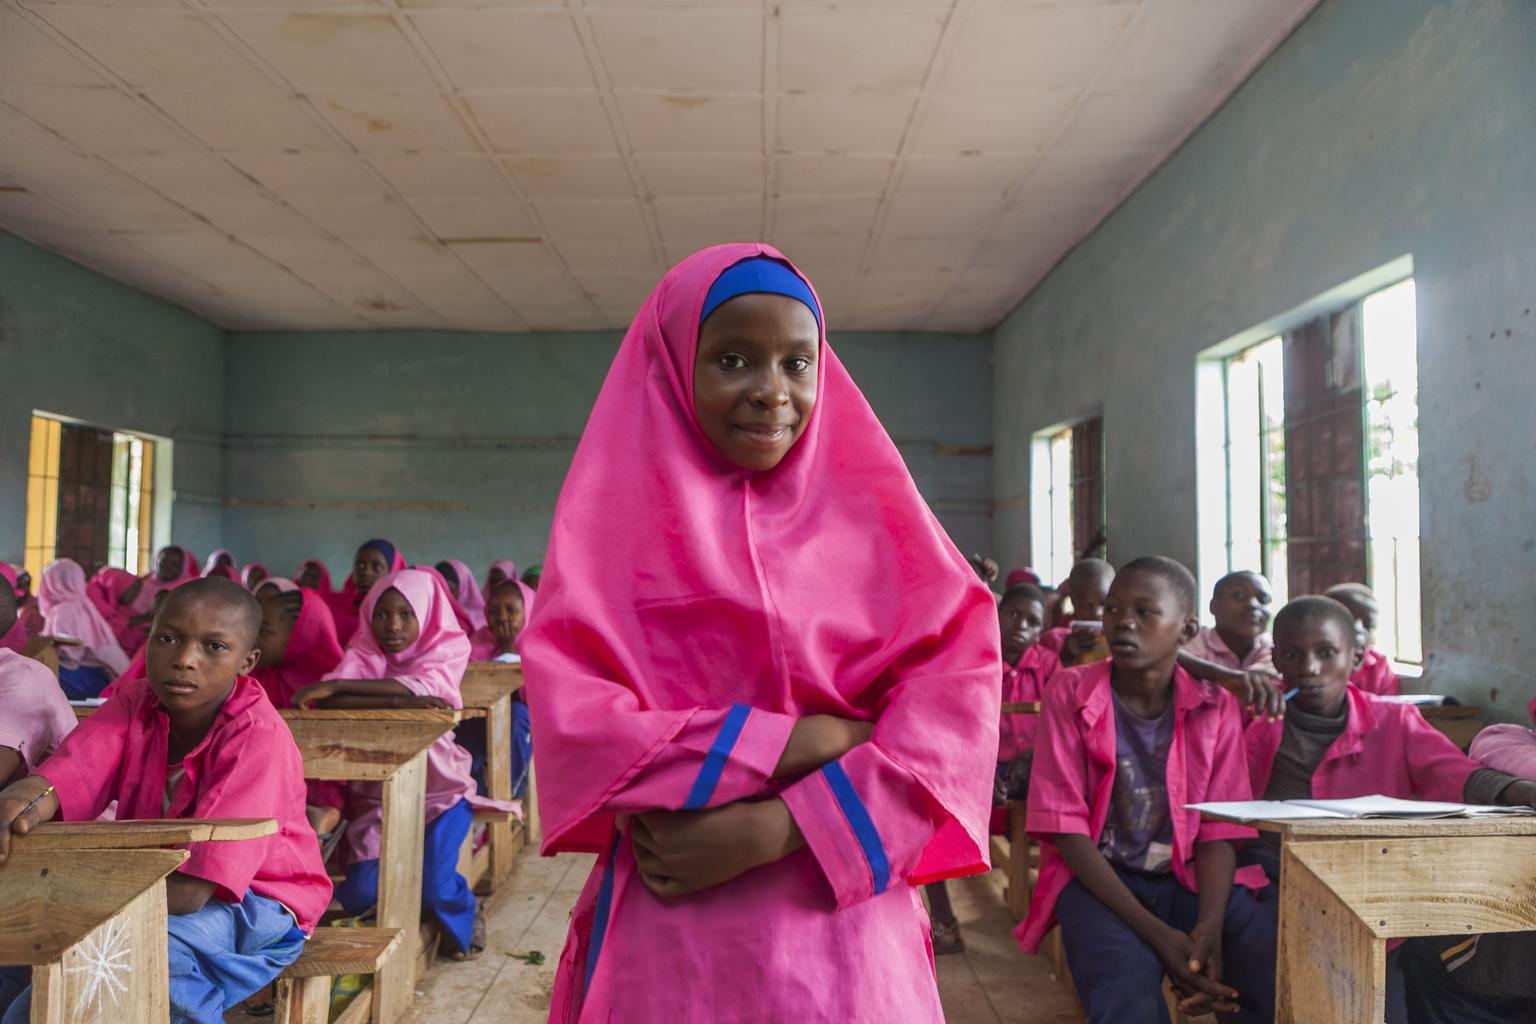 Nailatu Al-Quasm, 12, stands in her classroom at the UNICEF-supported Gyezmo primary school in the town of Toro, Nigeria.